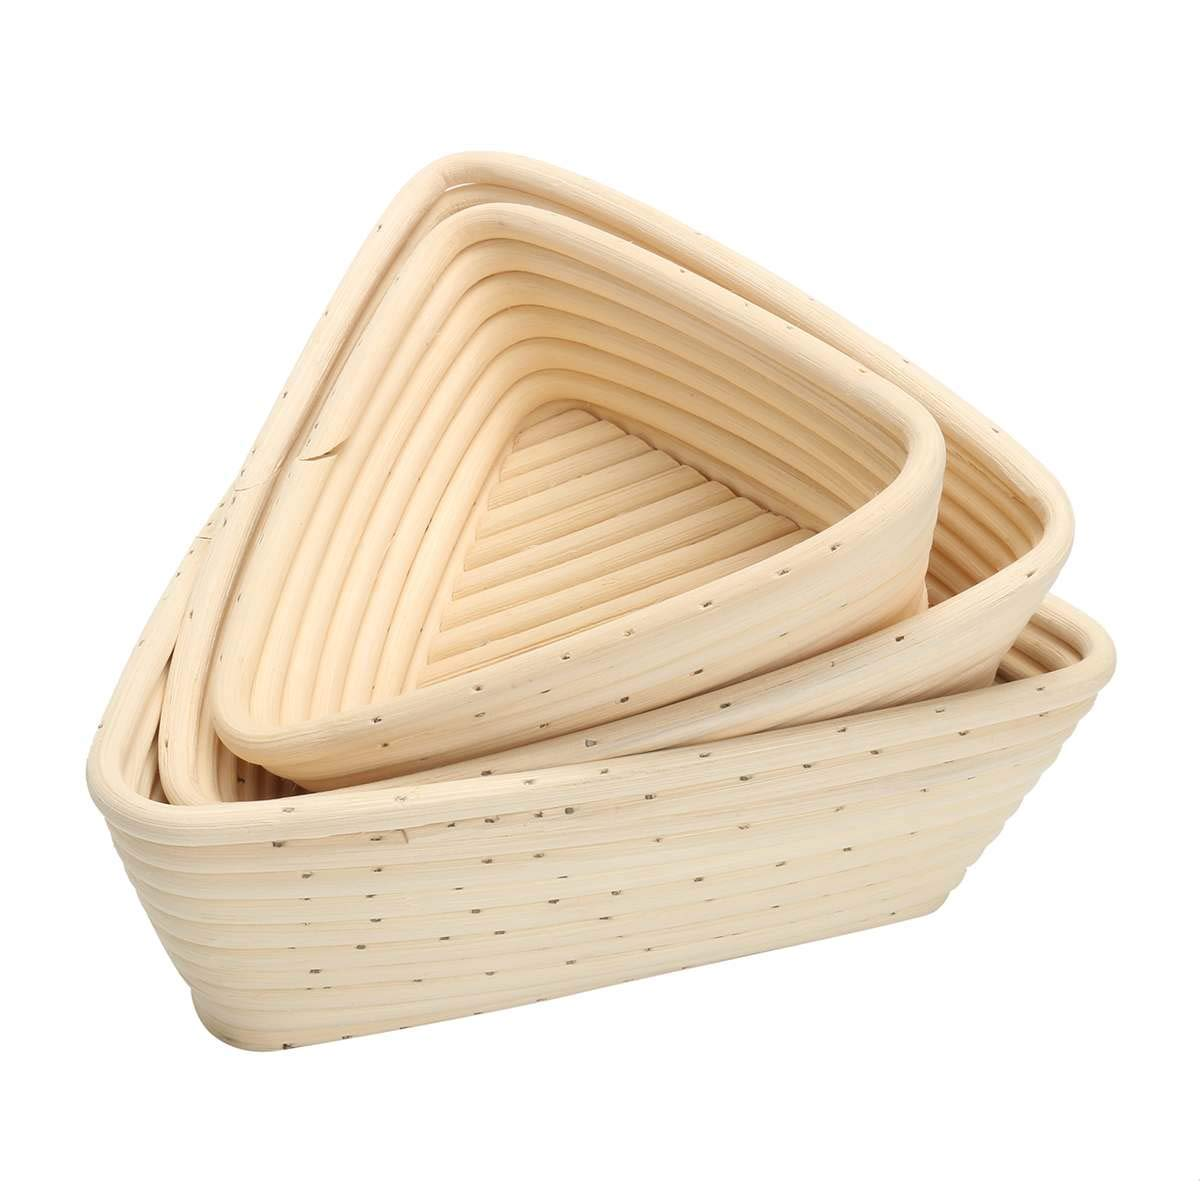 Best Quality - Baking & Pastry Tools - Size Triangle Dough Fermentation Rattan Basket Banneton Brotform Bread Proofing Proving Basket Bread Rattan Basket With Bag - by Tini - 1 PCs